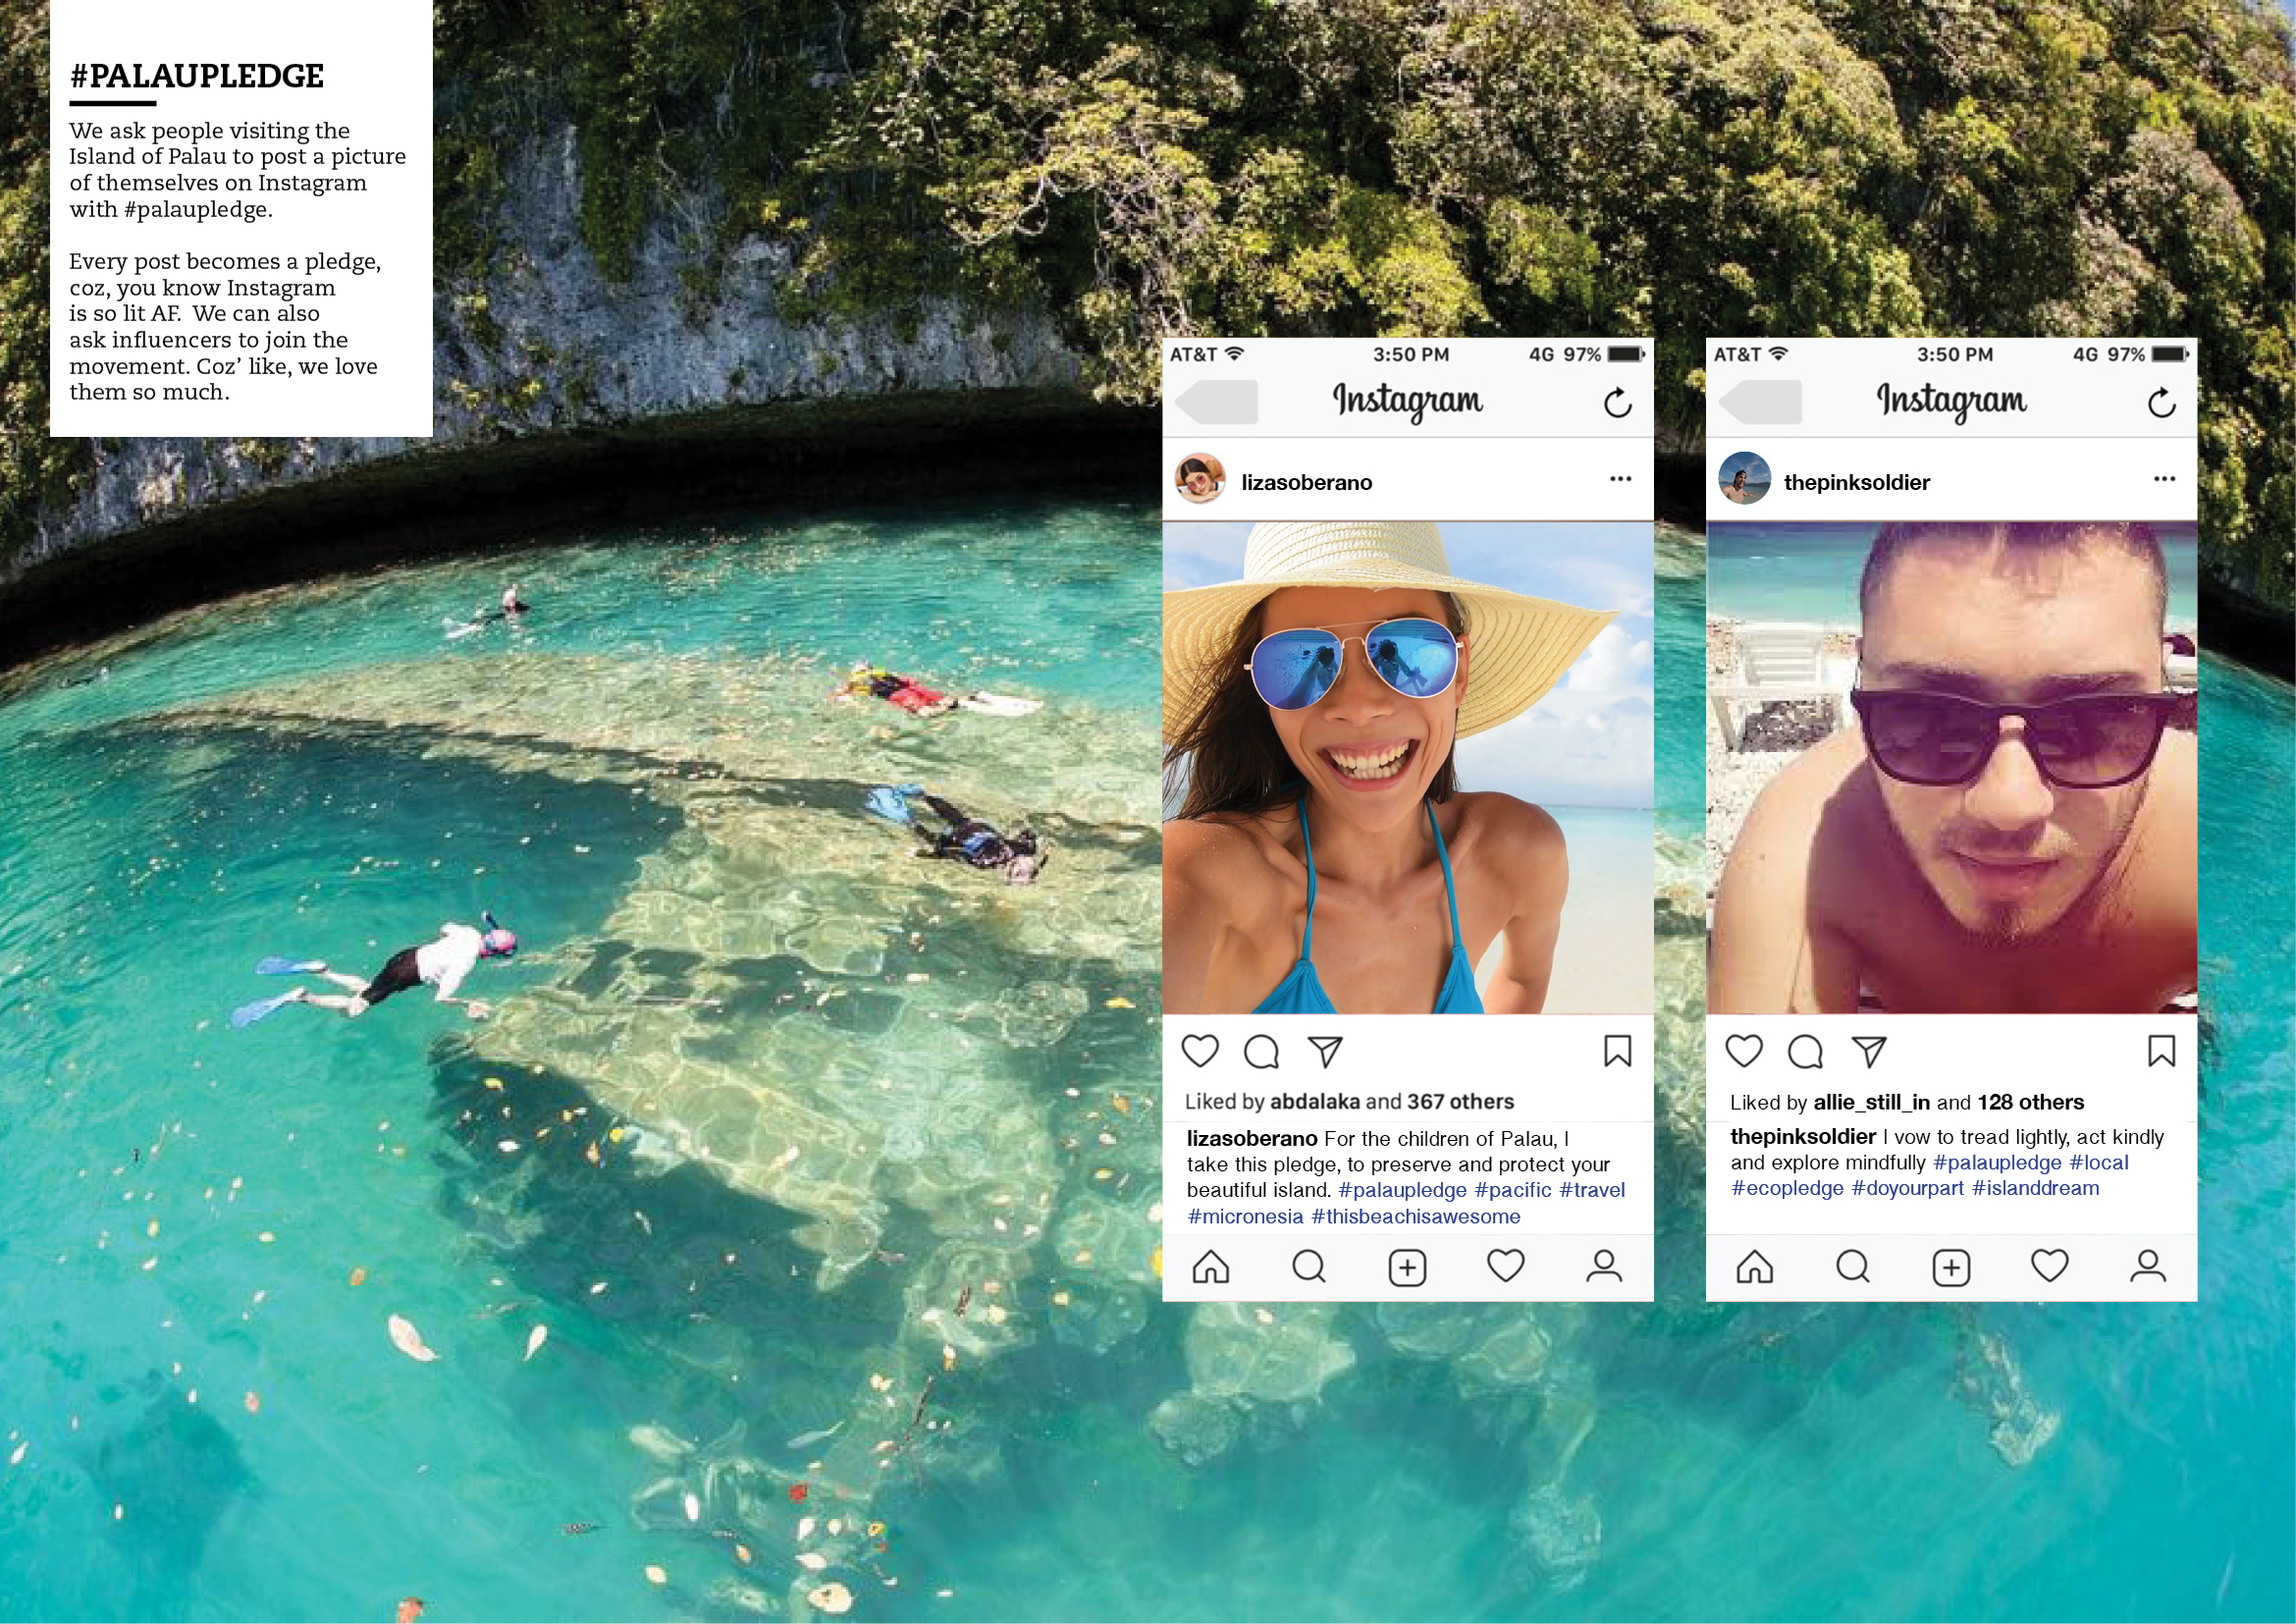 We ask people visiting the Island of Palau to post a picture of themselves on Instagram with #palaupledge. Every post becomes a pledge, coz, you know Instagram is lit AF. We can also ask influencers to join the movement. Coz' like, we love them so much.